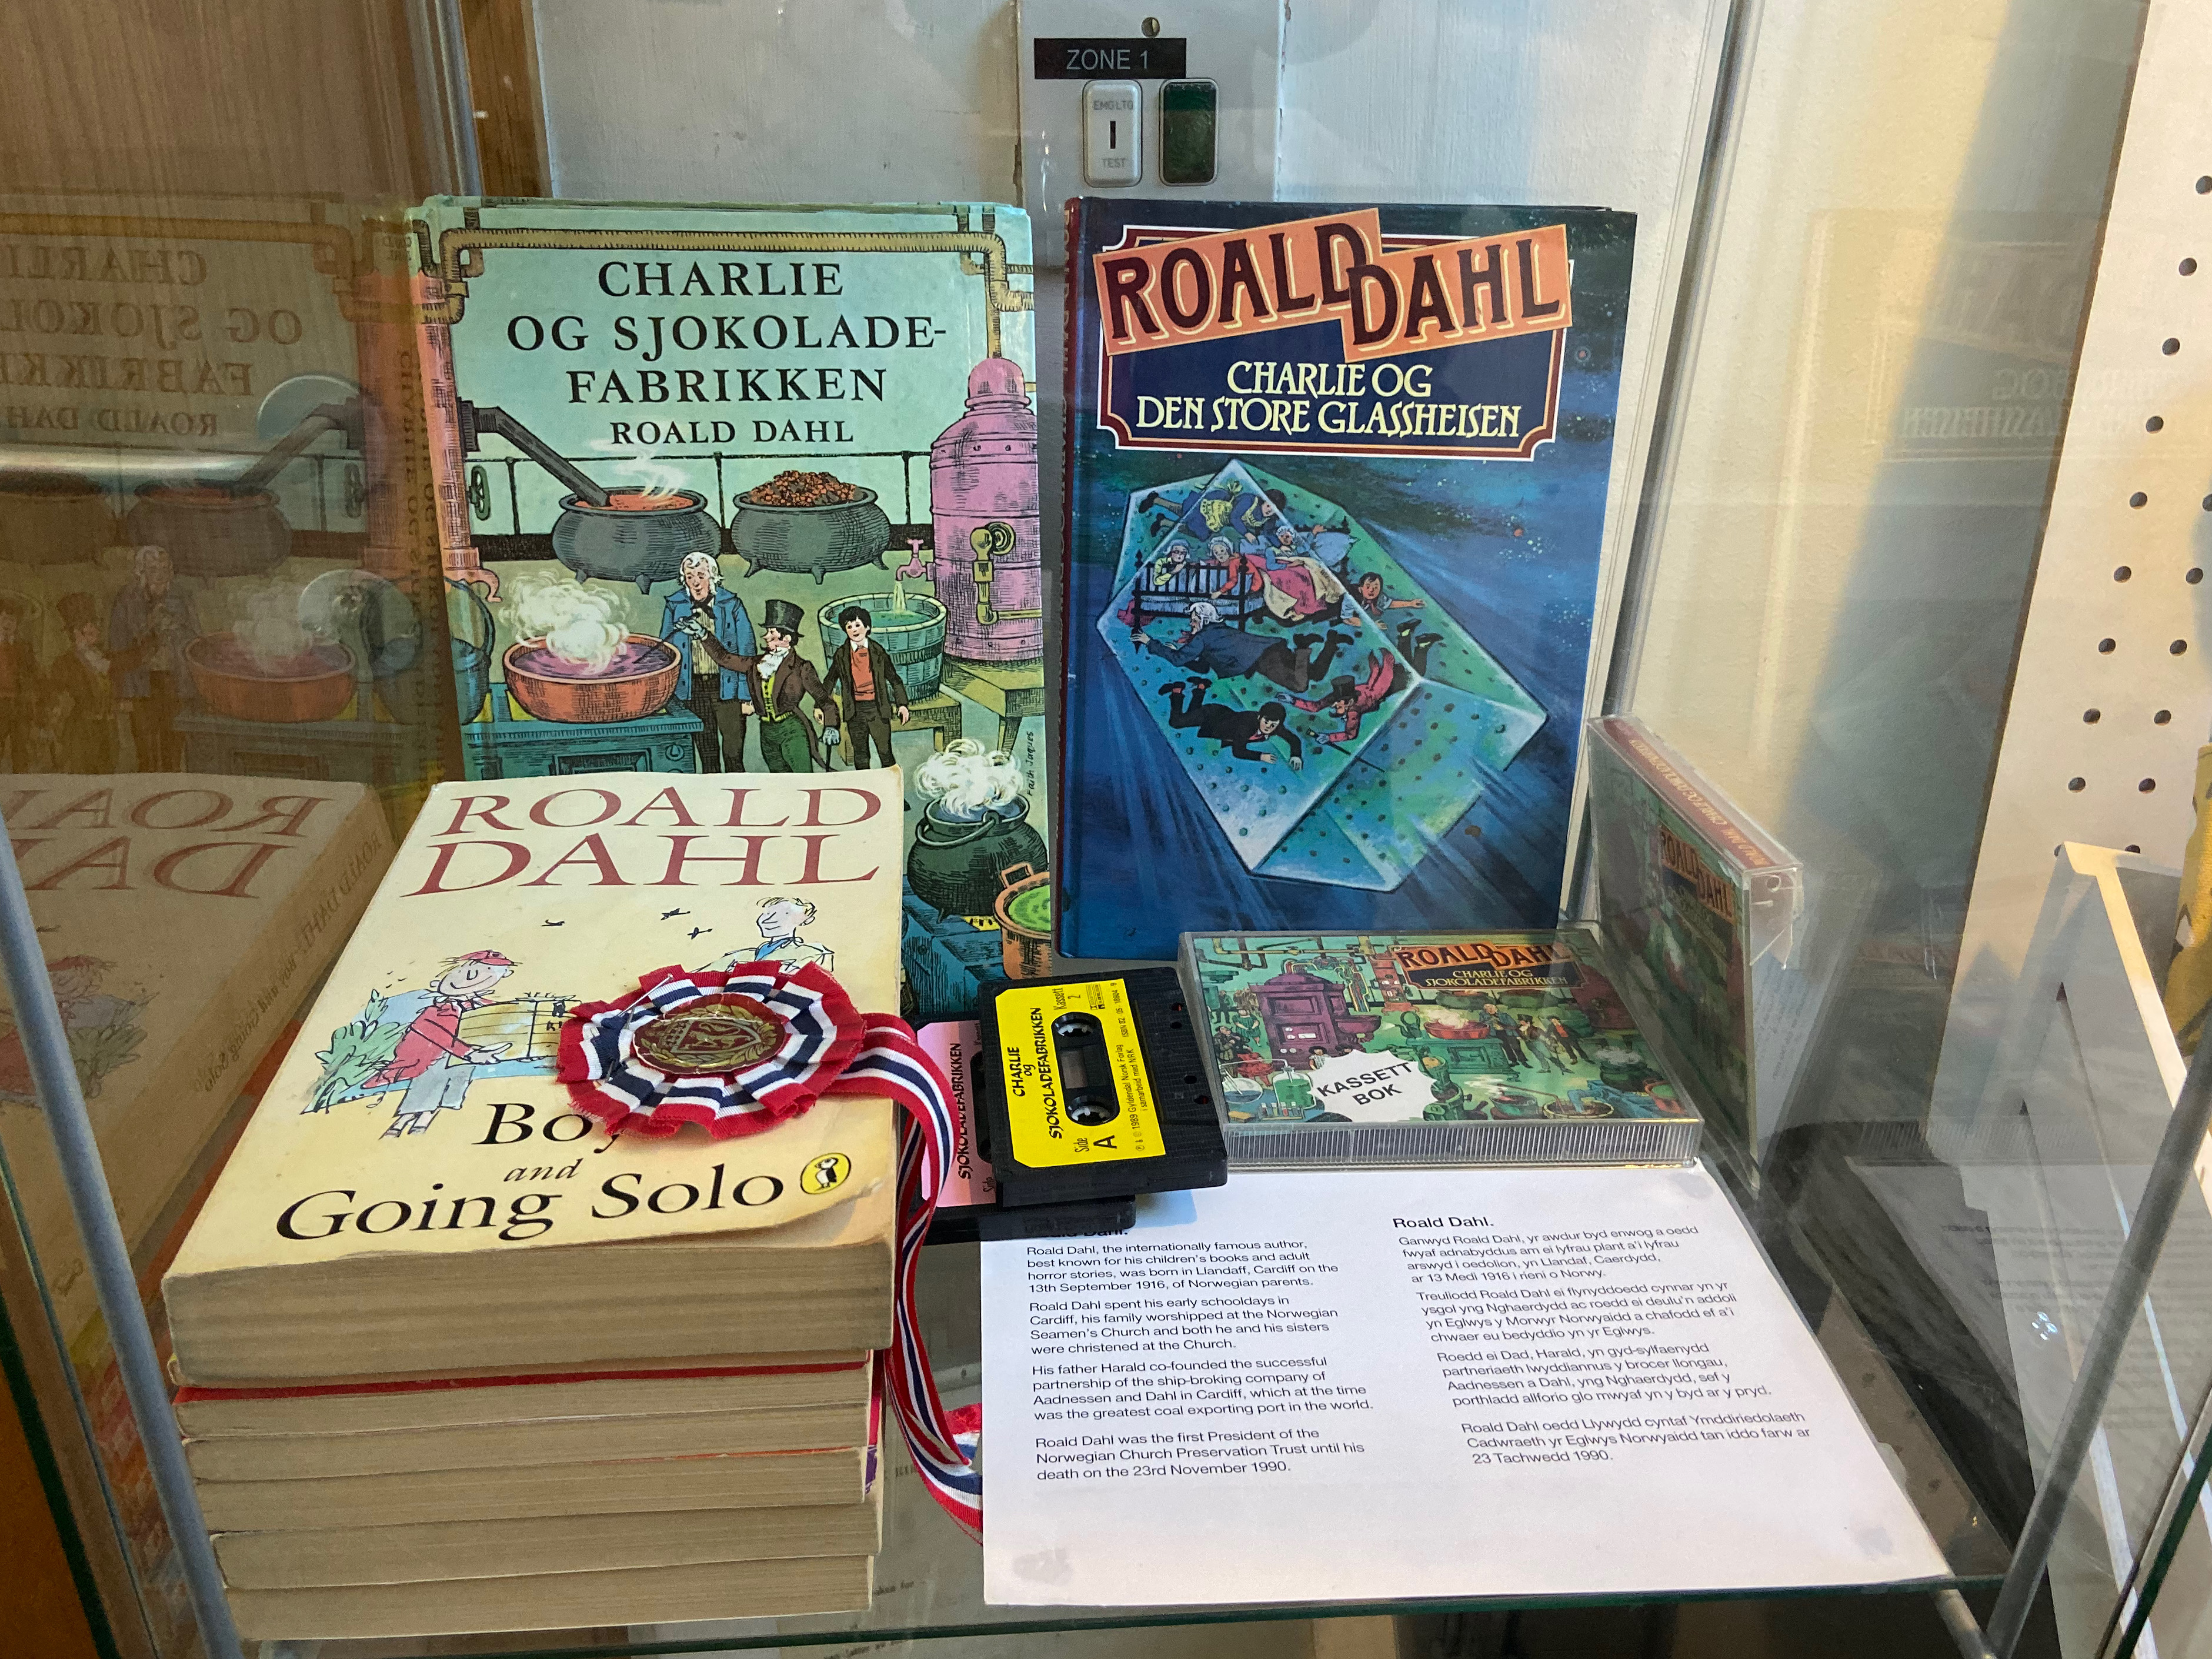 A collection of Roald Dahl's work in both English and Norwegian is displayed in a glass cabinet